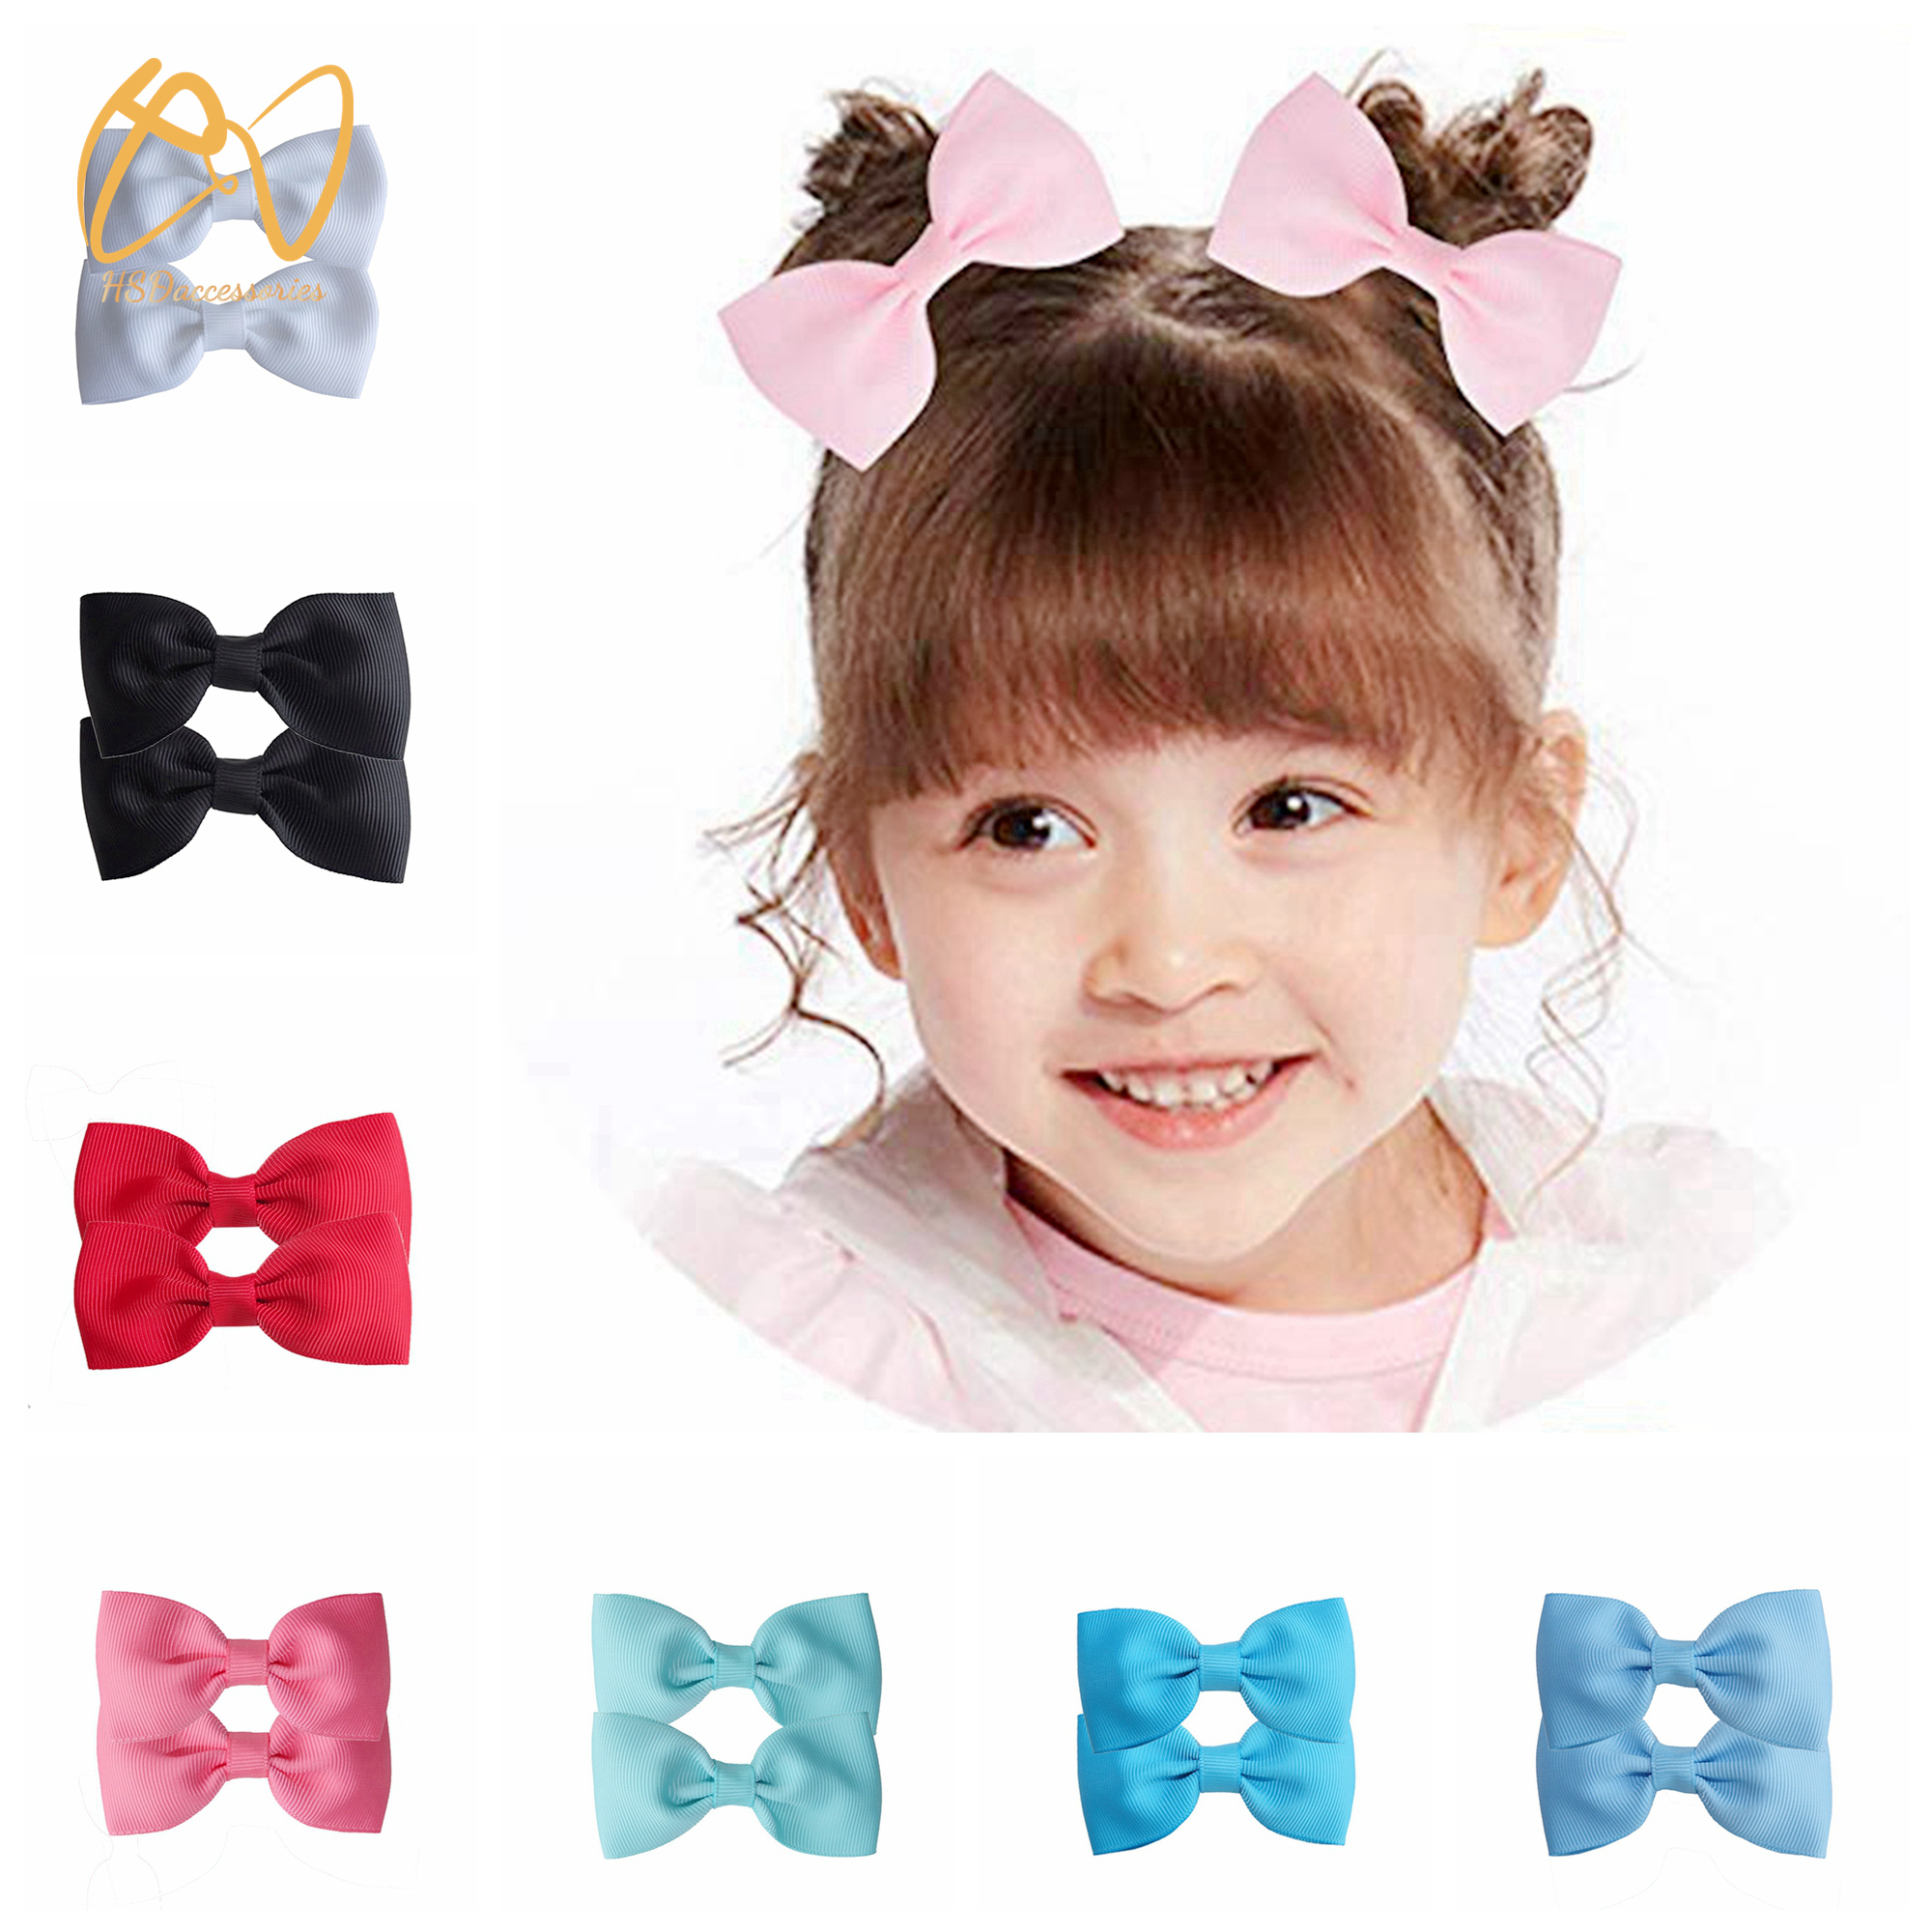 Hsd Accessories 40 Colors Comes In Pairs Baby Girls Grosgrain Ribbon Bows Hair Bow Clips Barrettes For  Babies Toddlers